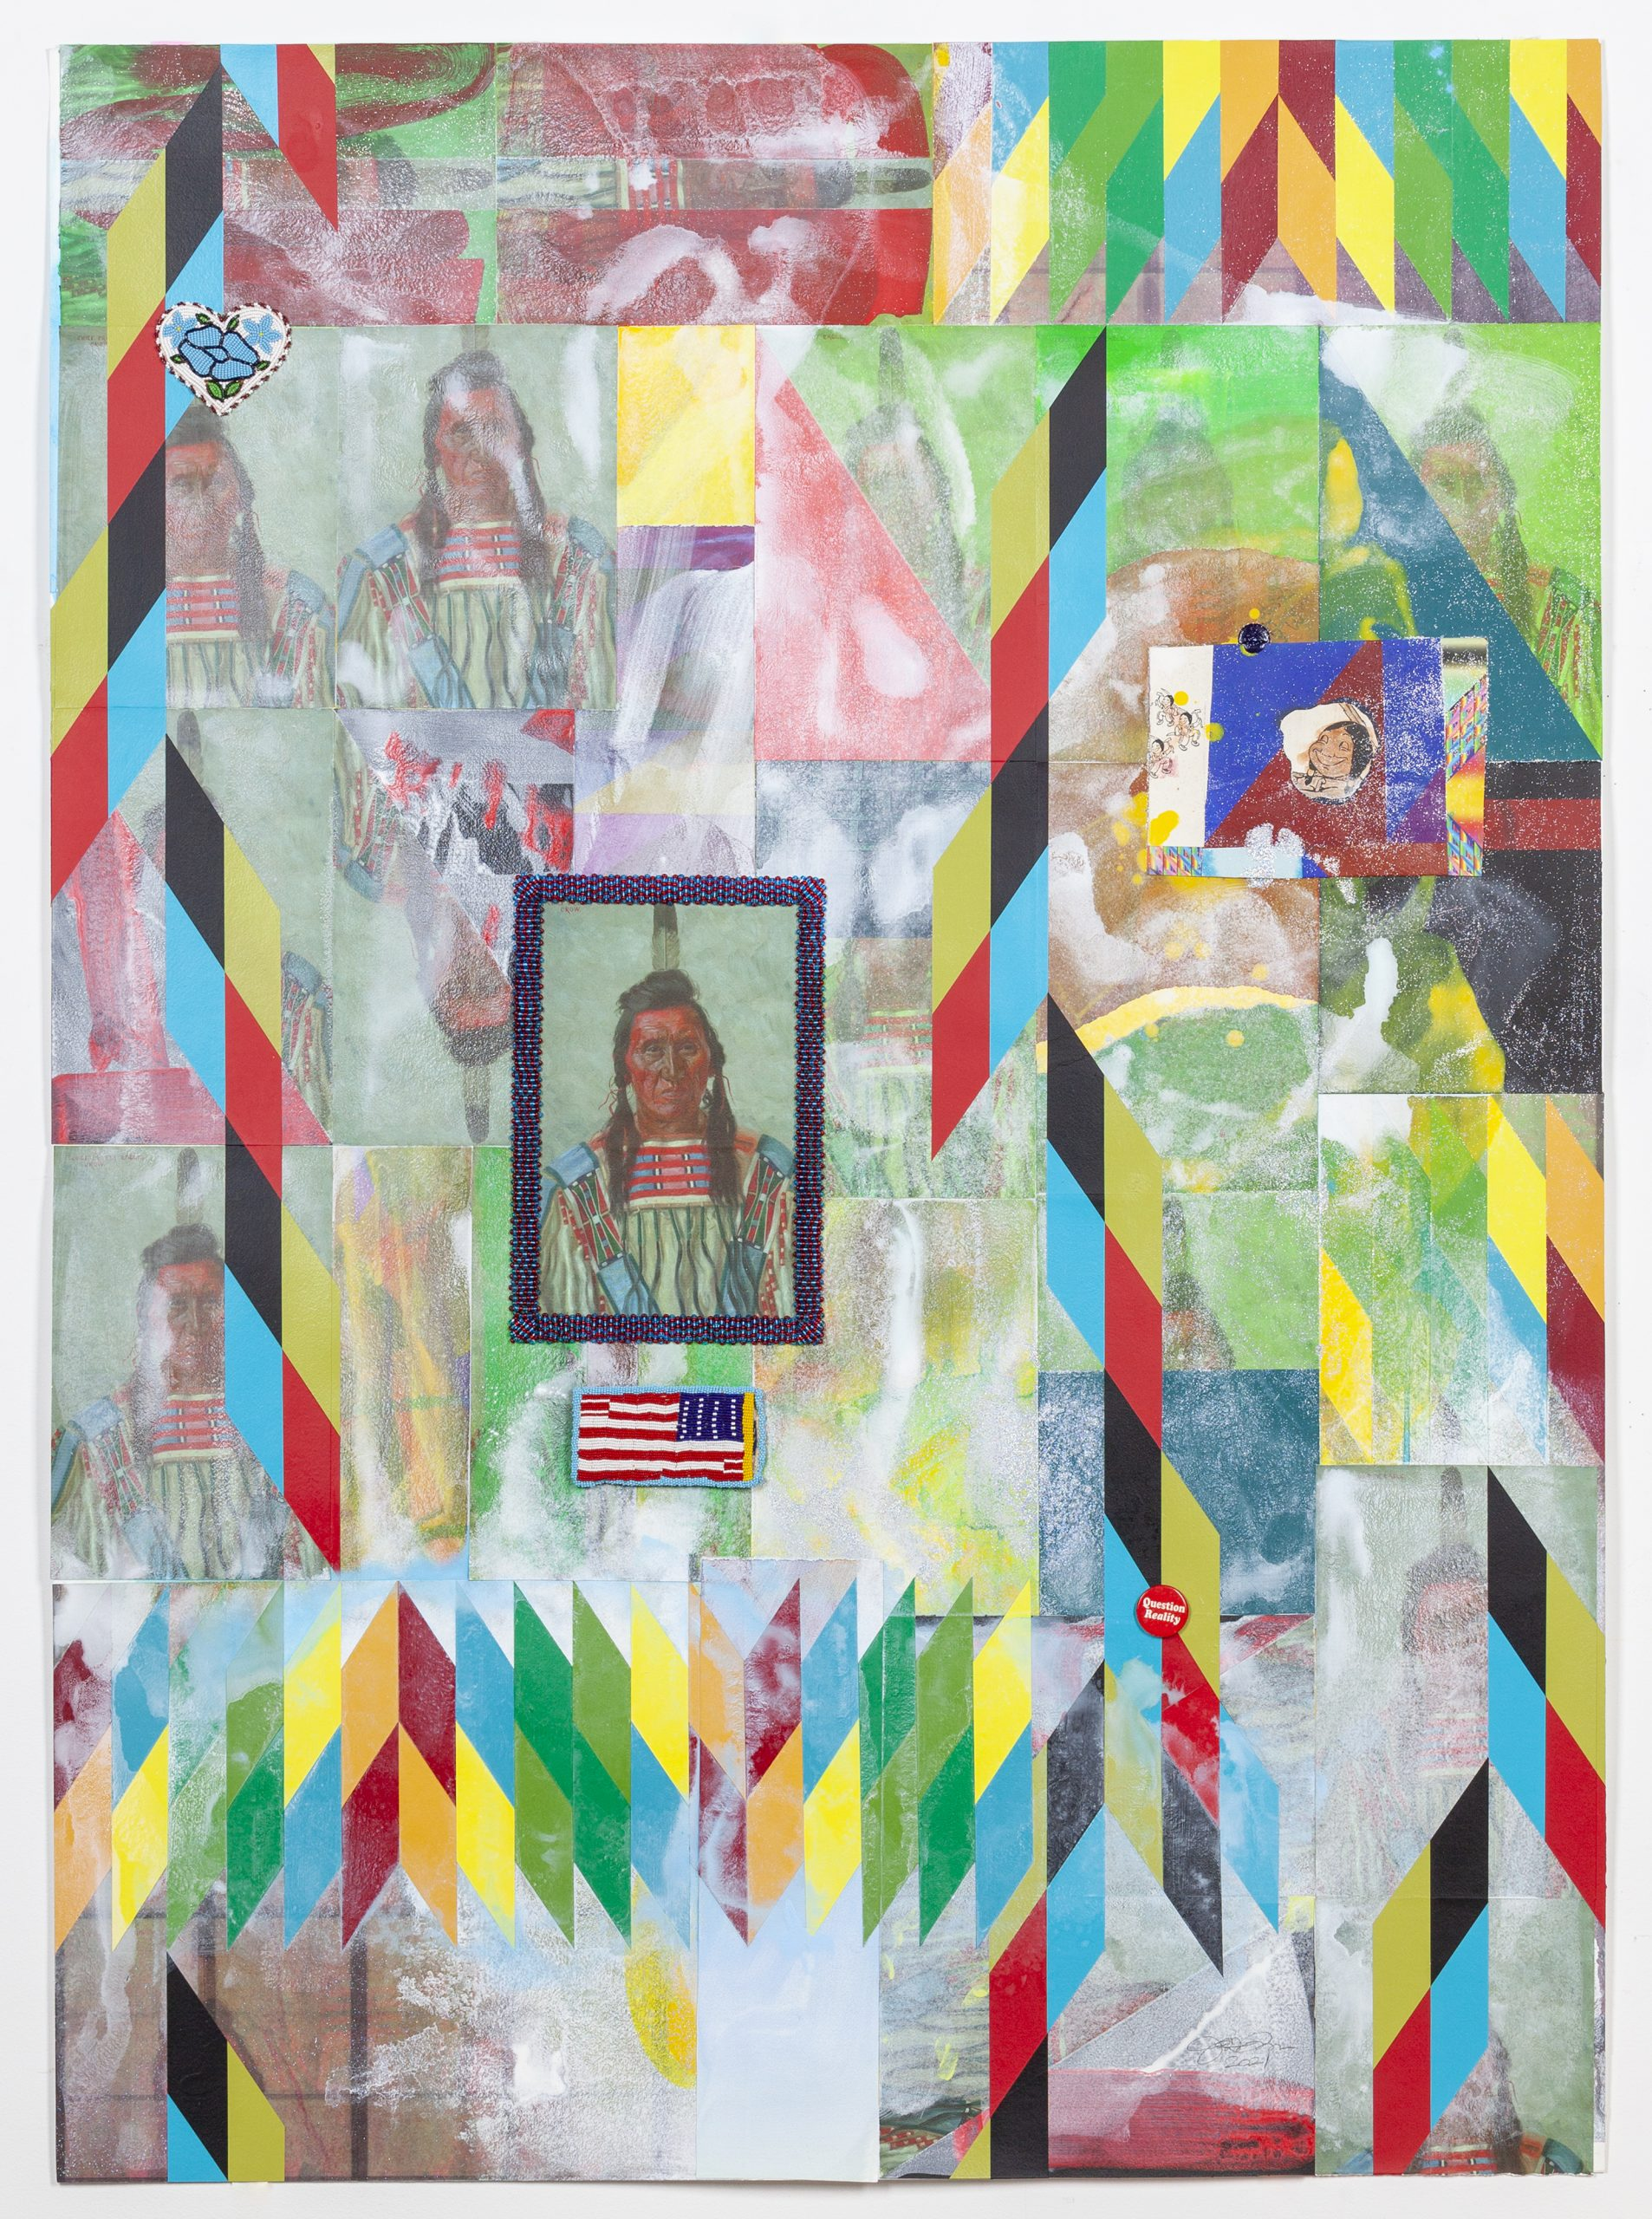 A colorful geometrically patterned painting with 3D elements affixed to the surface.